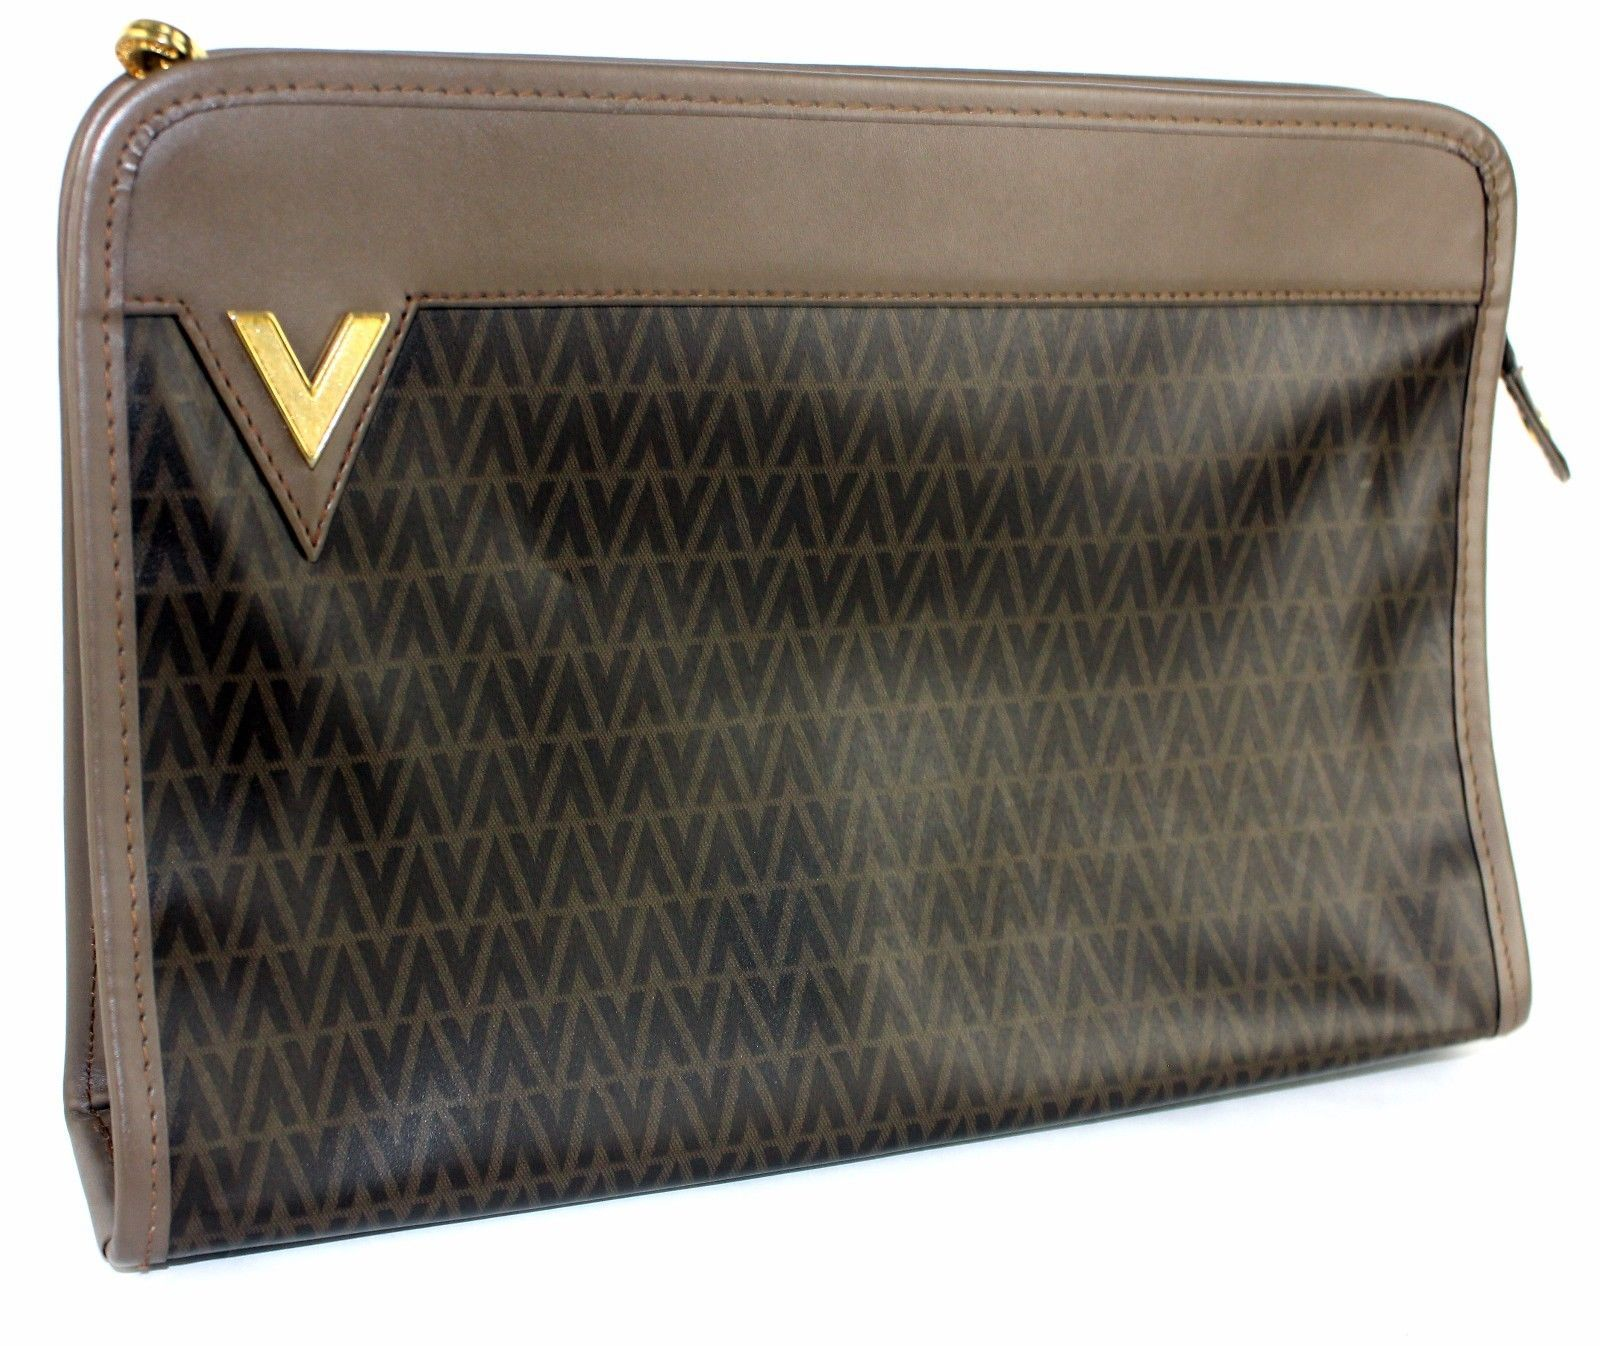 e4fe710057 S l1600. S l1600. Previous. Authentic Mario Valentino Brown PVC leather  Secondary /Clutch bag Made In Italy